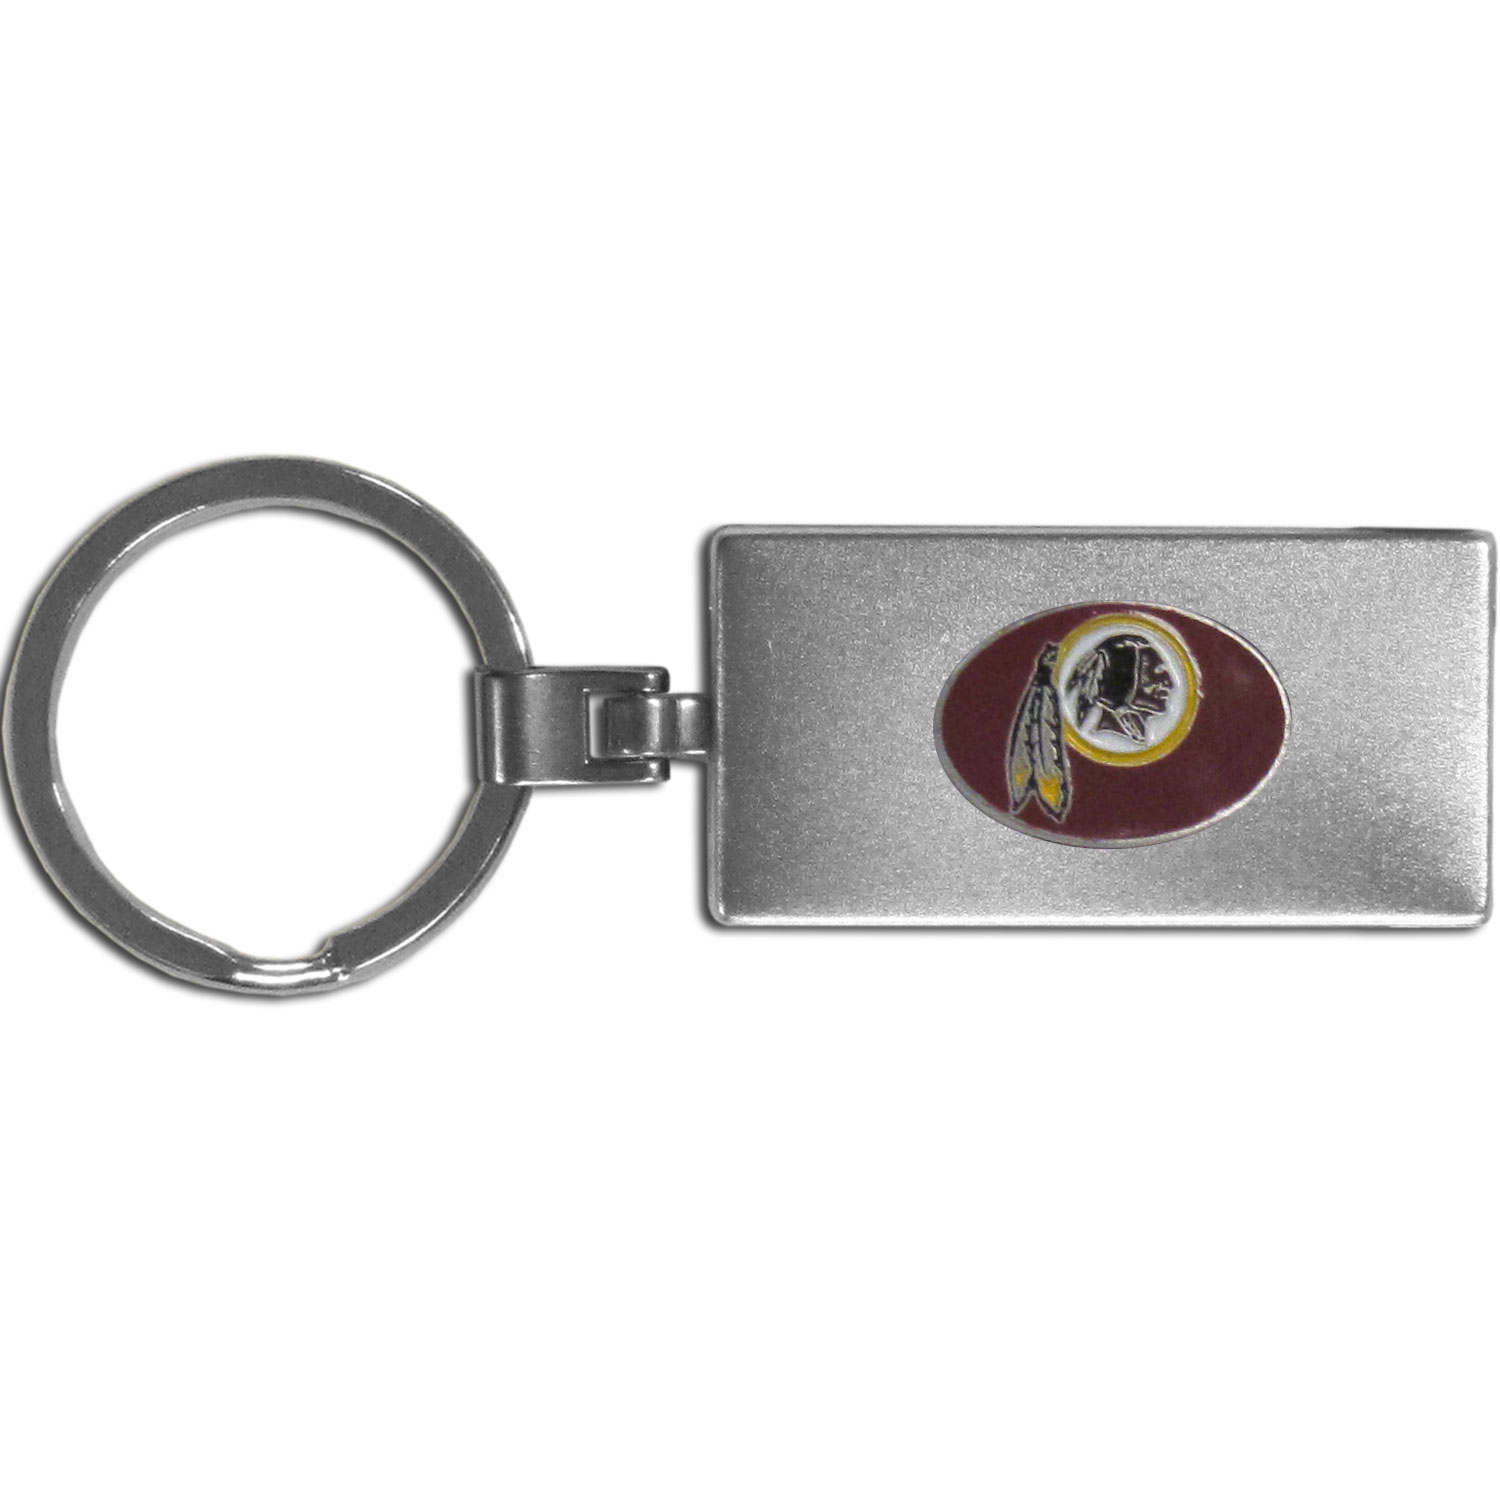 Washington Redskins Multi-tool Key Chain - Be the hero at the tailgate, camping, or on a Friday night with your Washington Redskins Multi-Tool Keychain which comes complete with bottle opener, scissors, knife, nail file and screw driver. Be it opening a package or a beverage Siskiyou's Multi-Tool Keychain goes wherever your keys do. The keychain hangs at 4 inches long when closed.